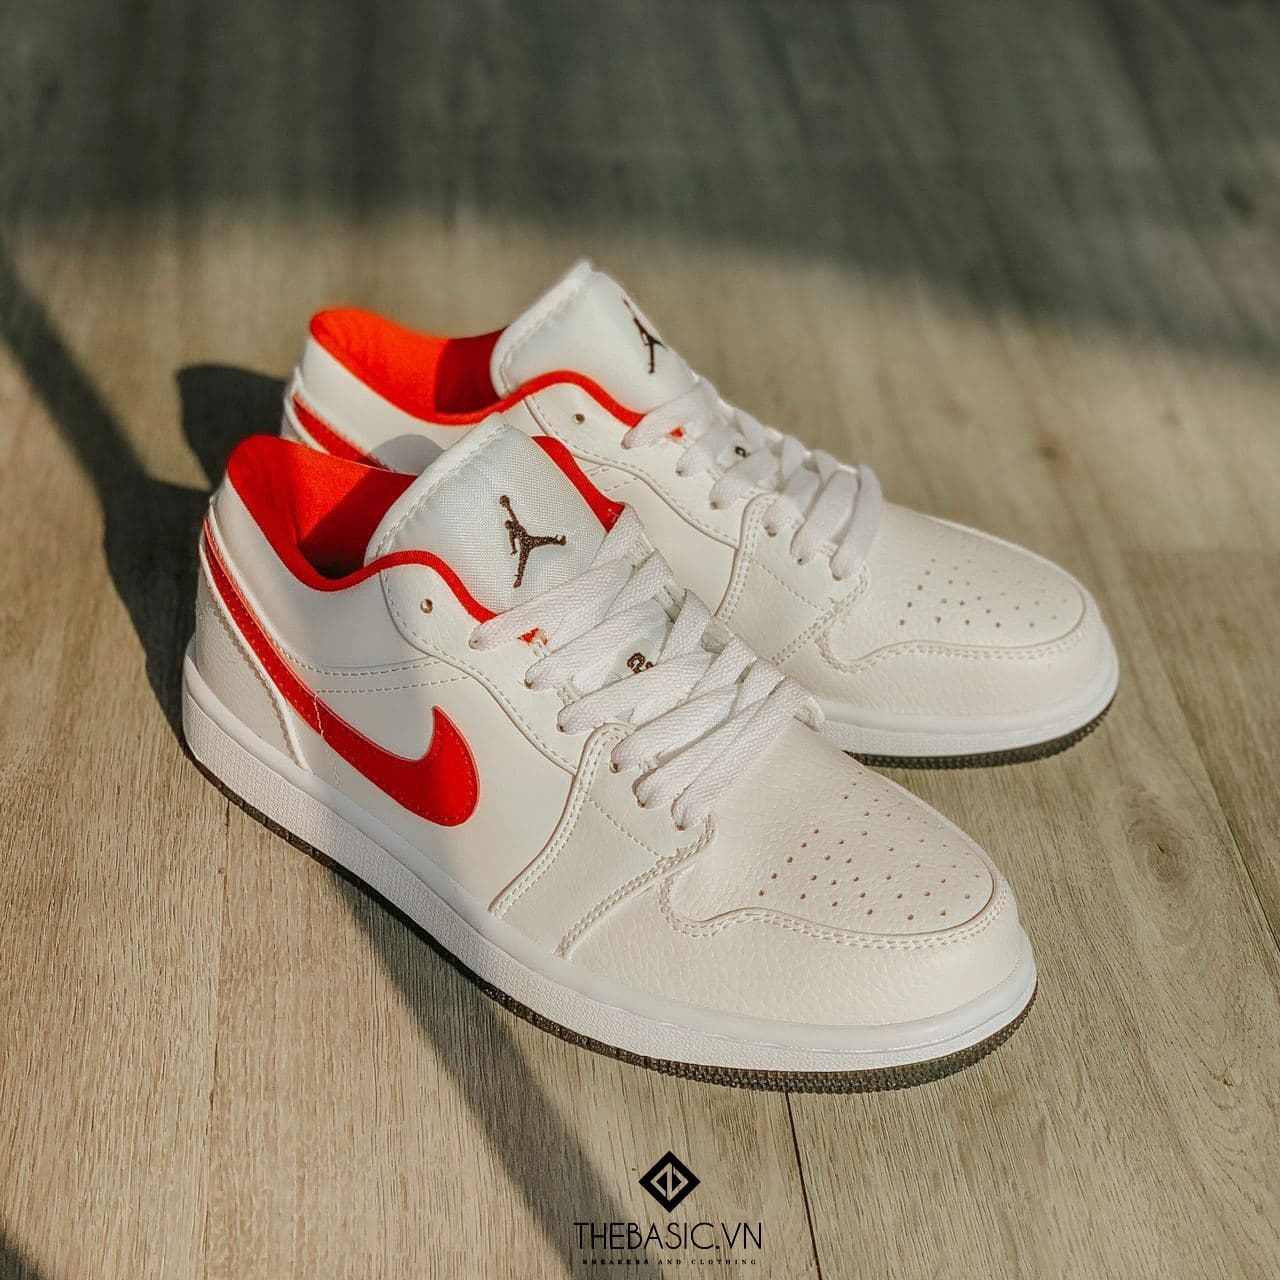 Ni - Jordan 1s White Red Low